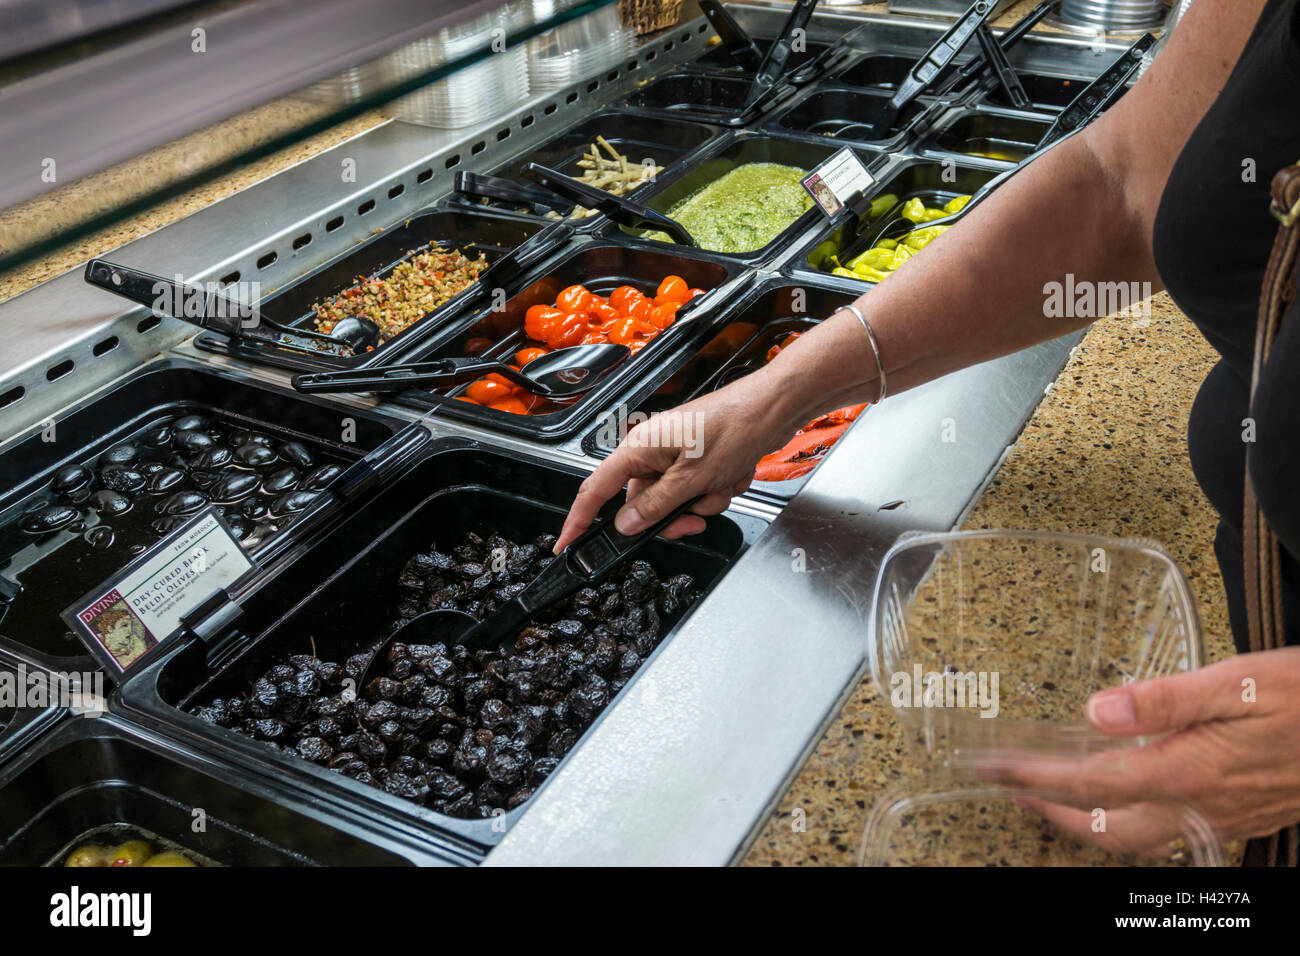 Woman selecting dry-cured black Beldi olives from a supermarket self-service delicatessen counter. Stock Photo